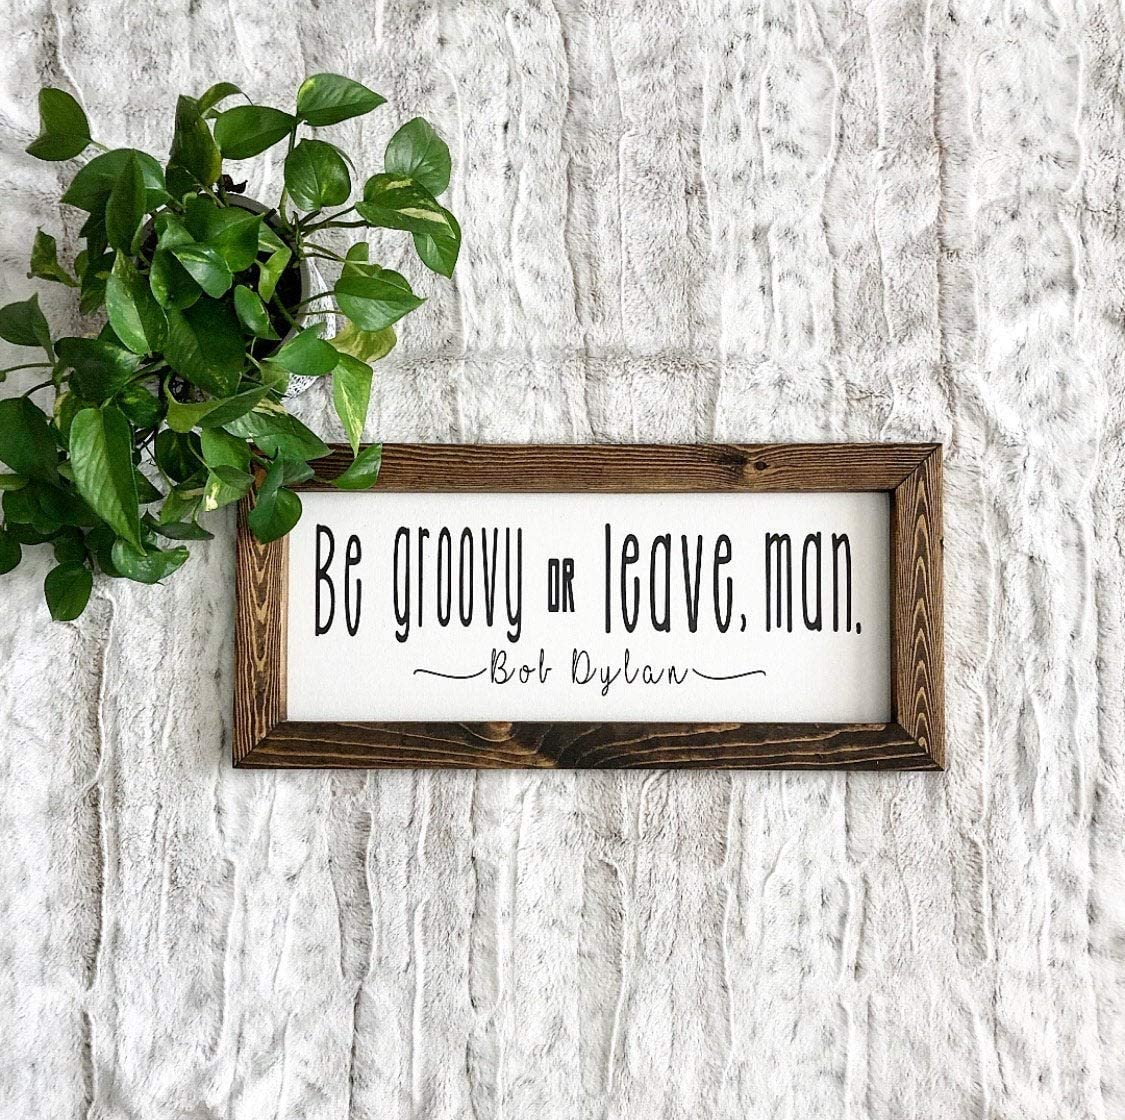 EricauBird Wood Sign-Be Groovy or Leave,Man,Bob Dylan,Wooden Sign,Man Cave Decor,Funny Decor, Entryway Decor,Sign Above Door,Wall Art, Home Wall Art, 6x20